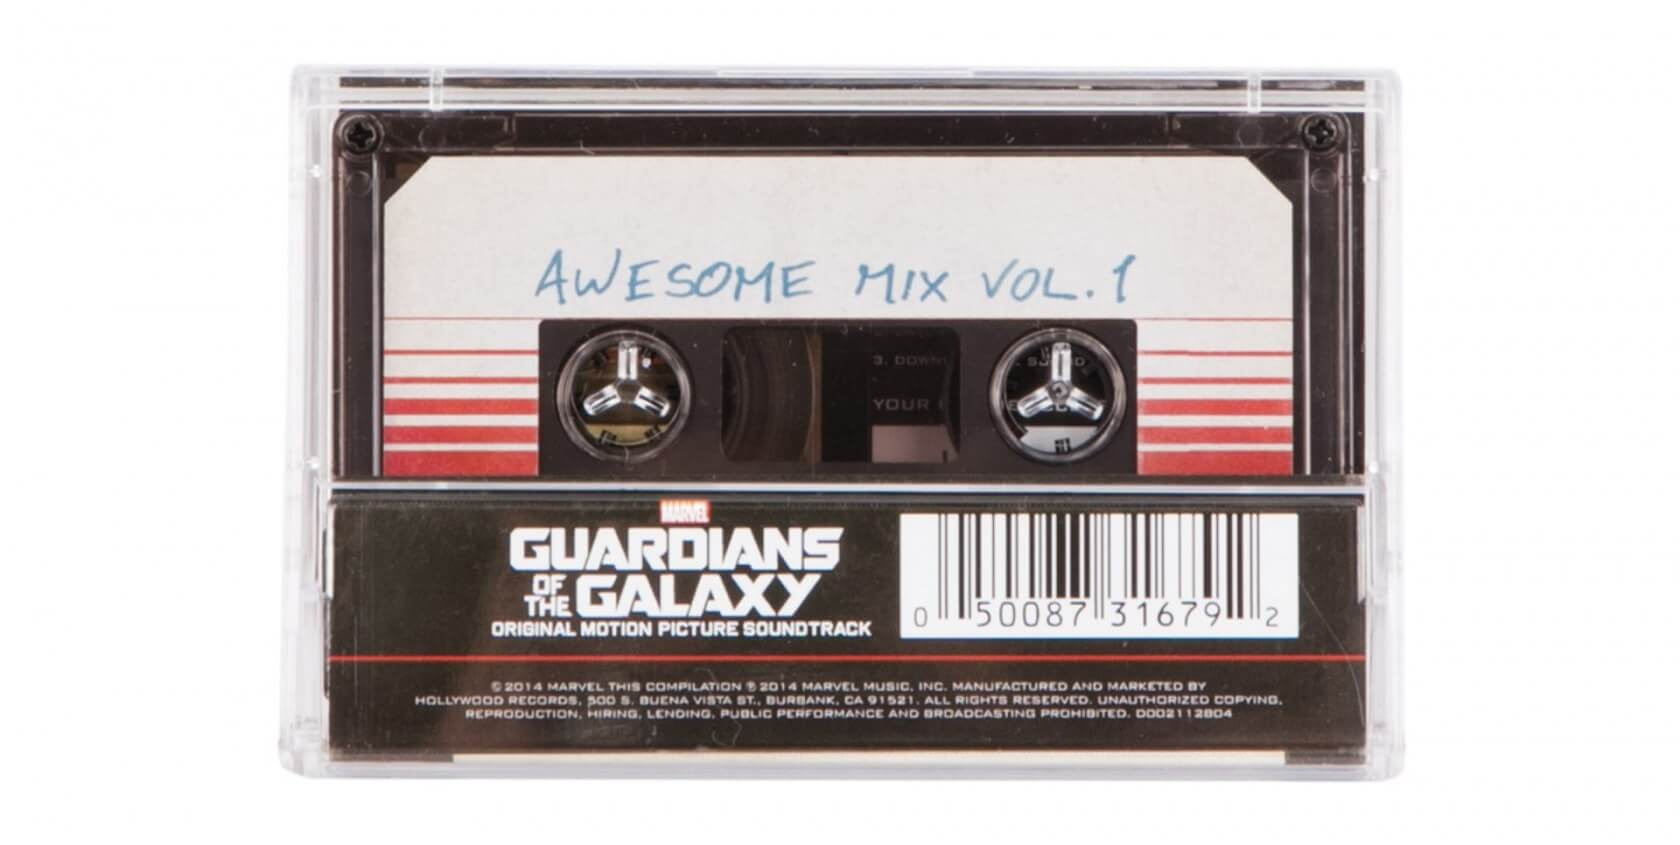 The cassette tape industry's growth has hit a snag due to material shortages